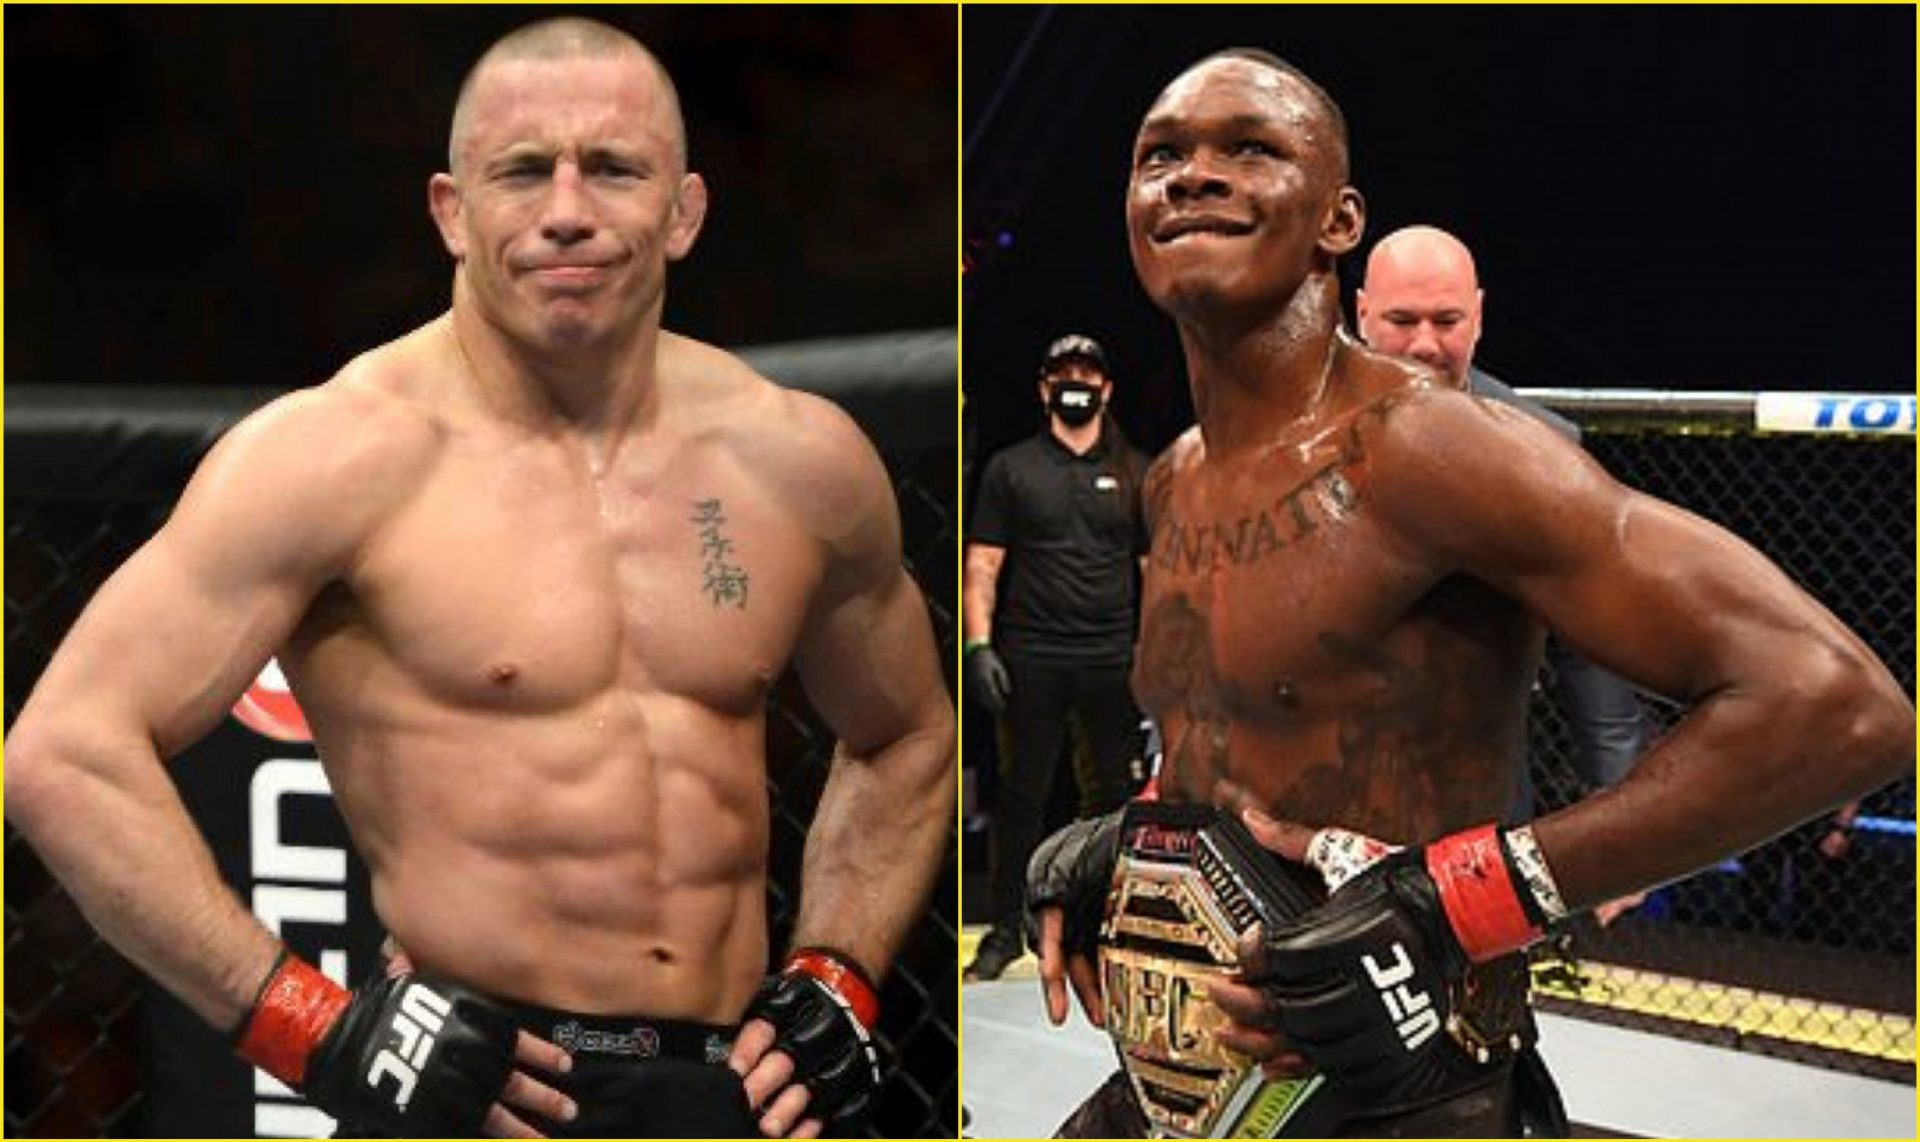 George St-Pierre hails Adesanya as the 'Perfect Fighter' - Adesanya